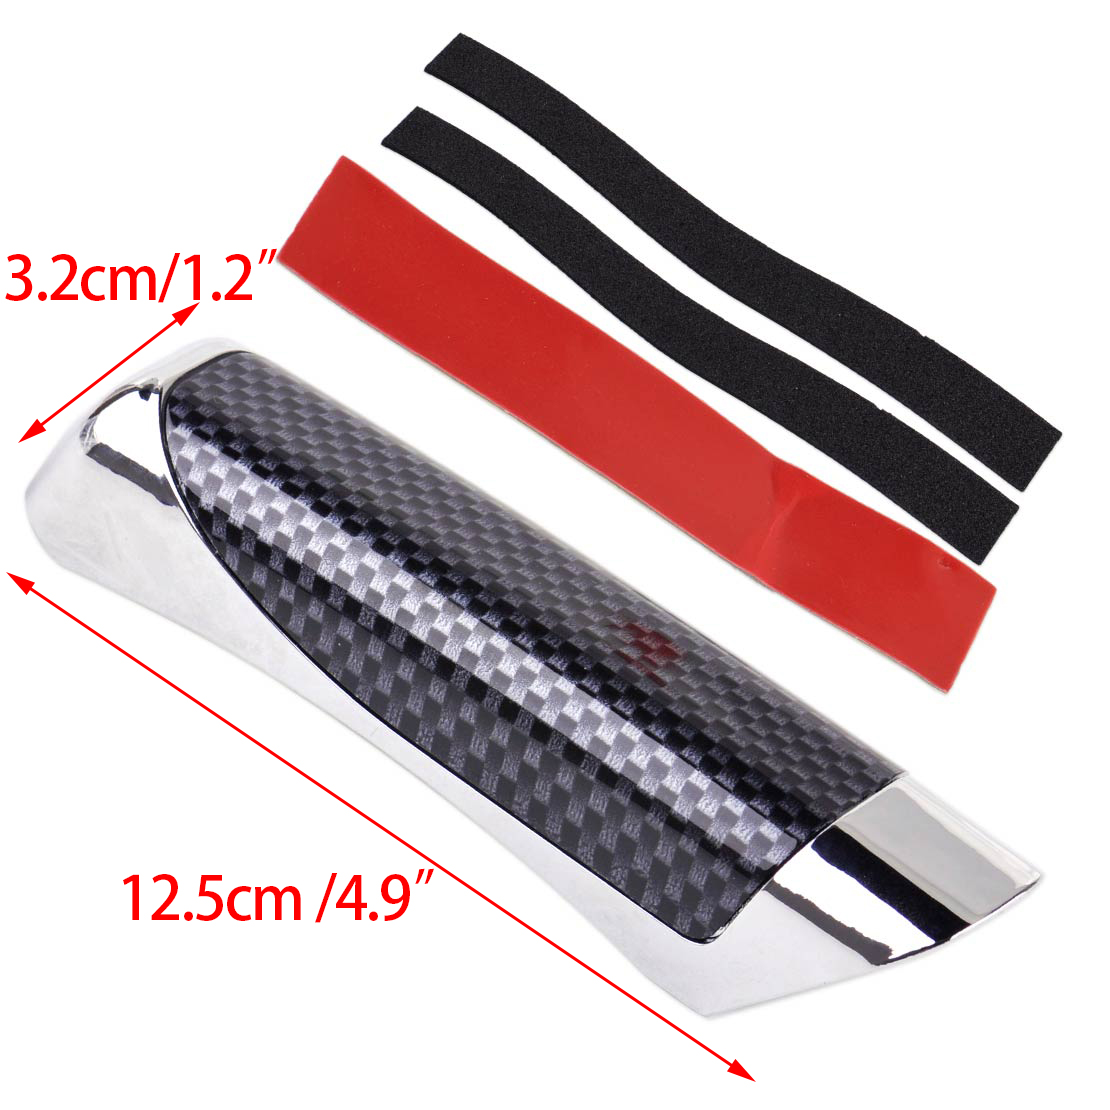 Universal Red Hand Brake Protector Cover Carbon Fiber Car Accessory Decoration